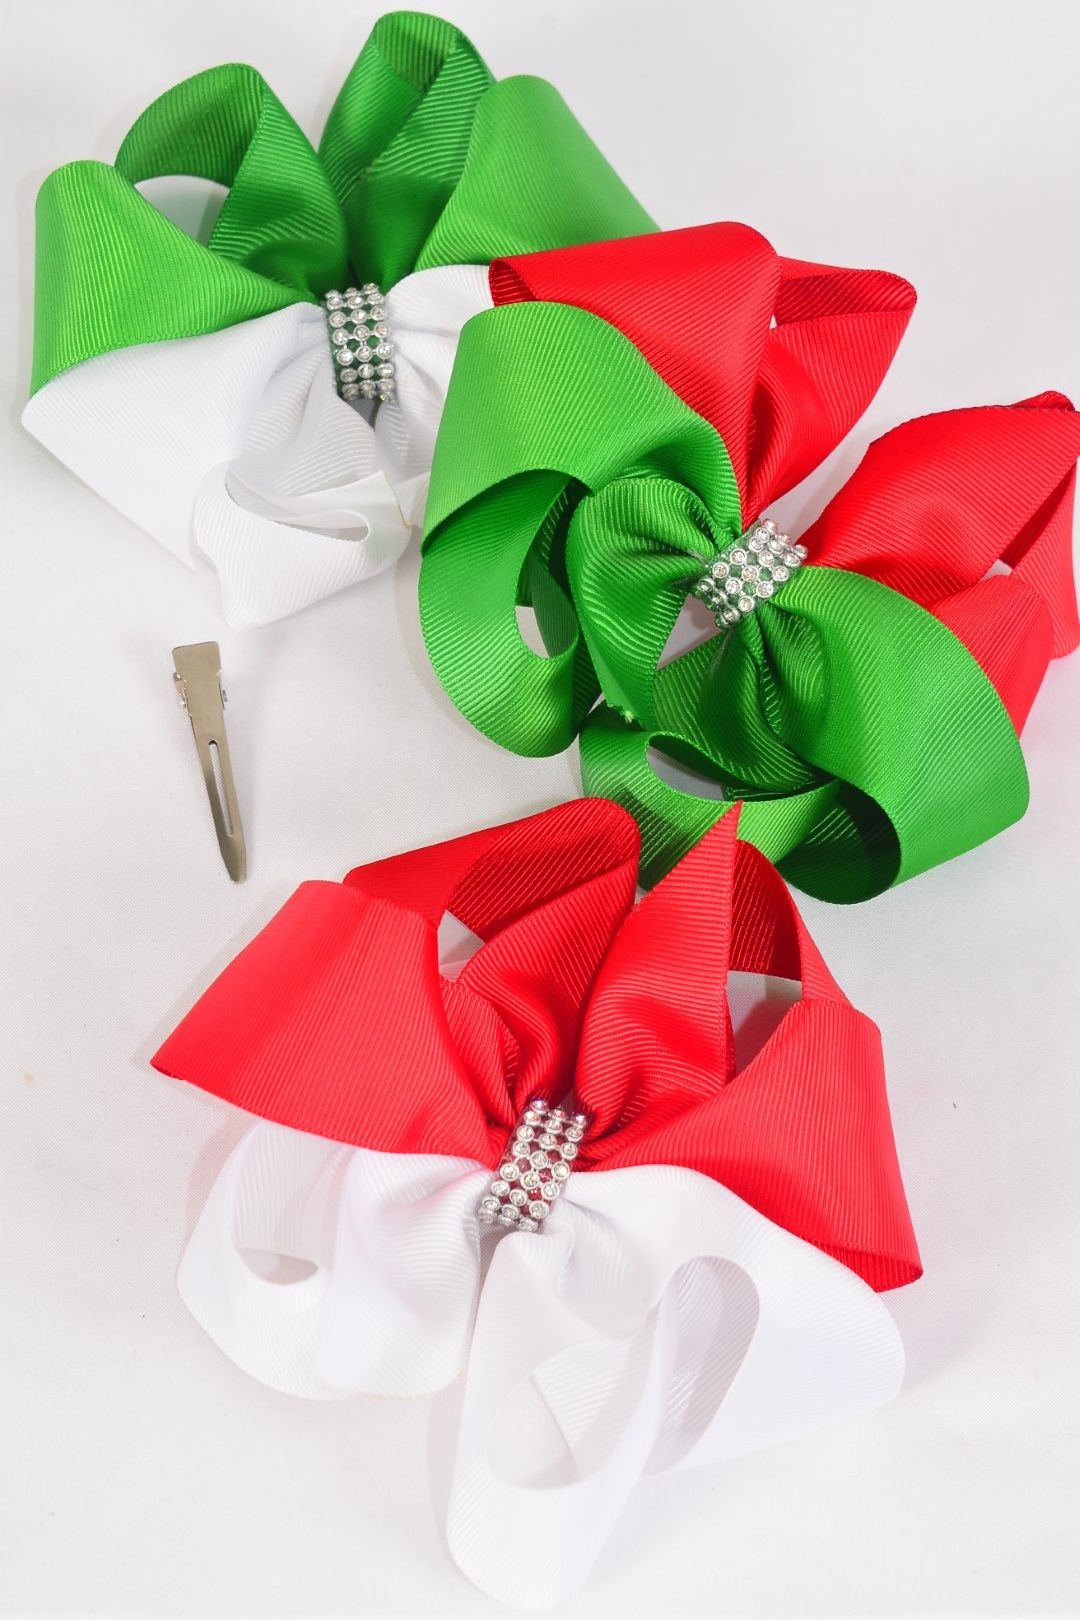 "Hair Bow Jumbo XMAS Center Clear Stones Grosgrain Bowtie/DZ **Alligator Clip** Size-6""x 6"" Wide,4 of each Color Asst,Clip Strip & UPC Code"